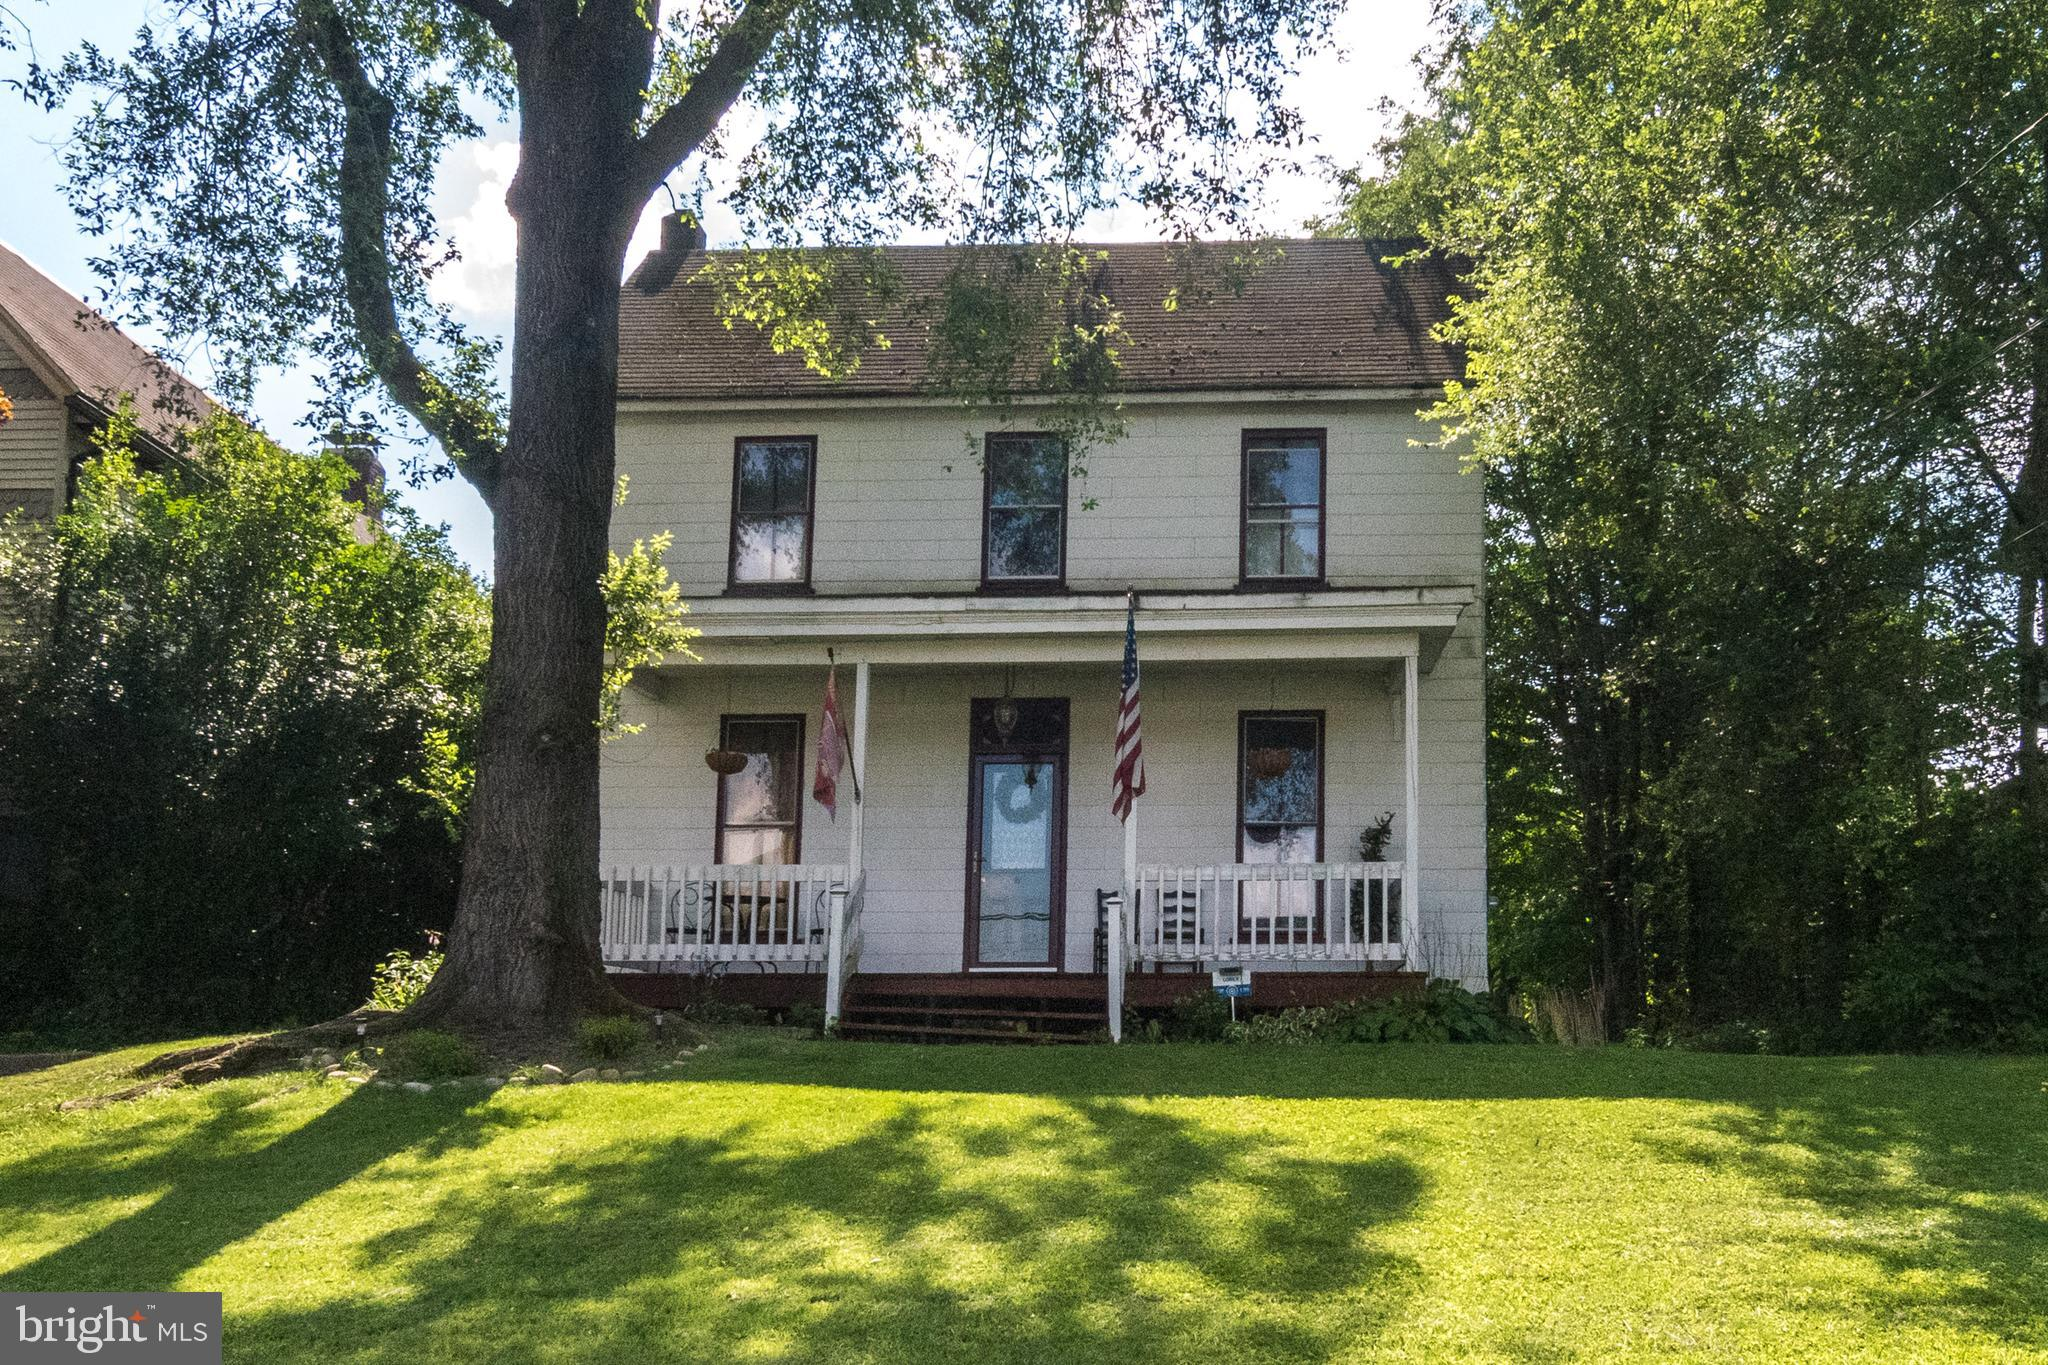 507 EASTON ROAD, RIEGELSVILLE, PA 18077